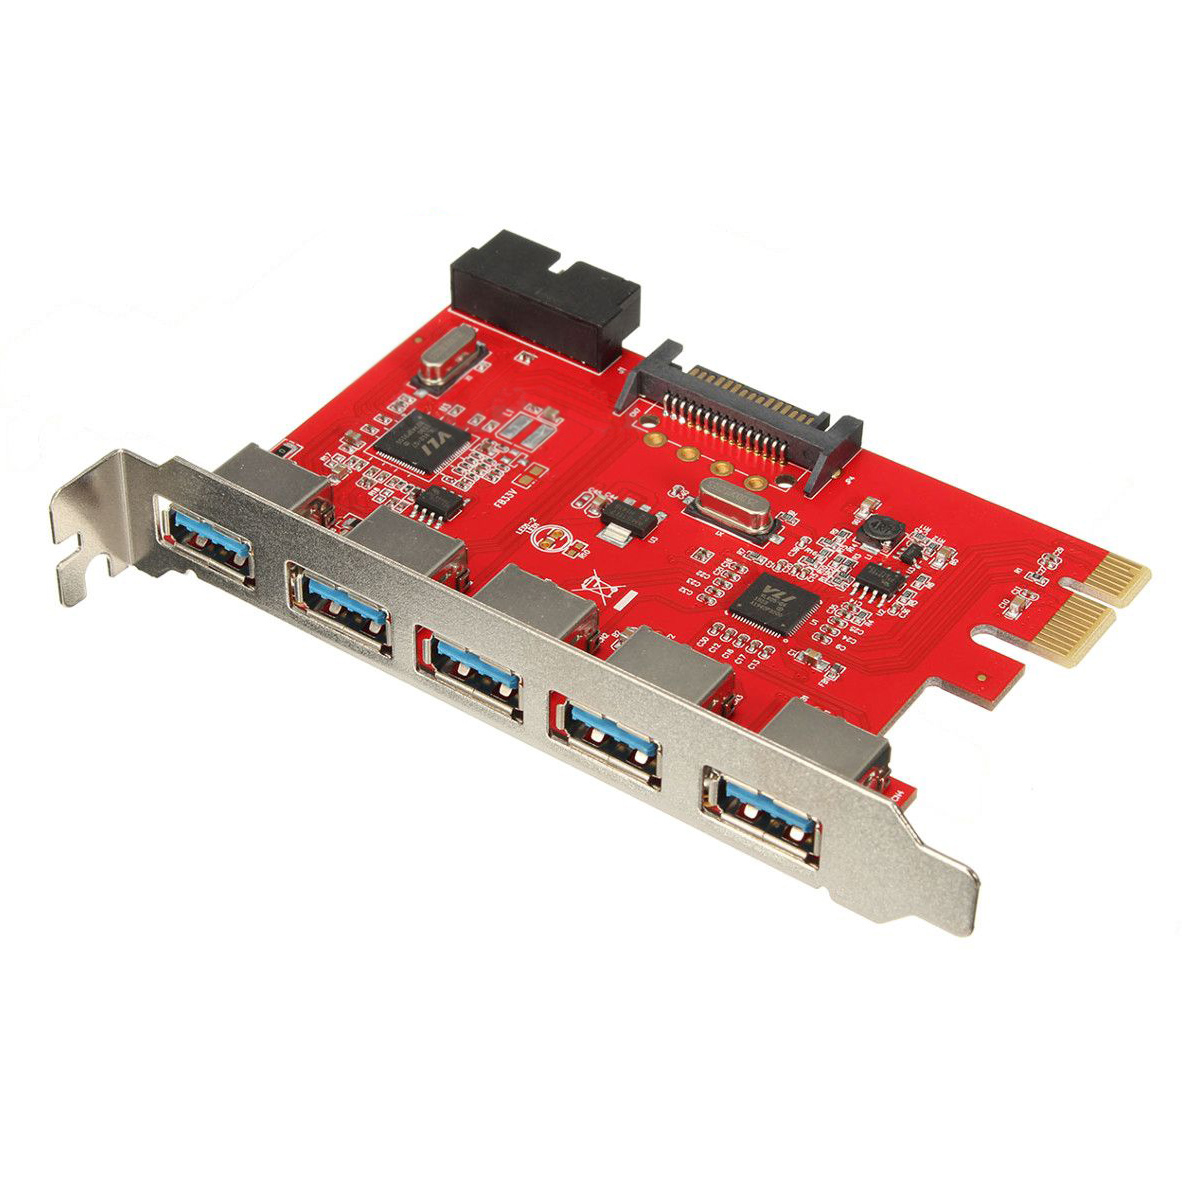 Card 5 Ports PCI-E USB 3.0 HUB 20 Pin 15Pin SATA Adapter Red 2 ports rs485 422 pci card optical isolation surge protection 1053 chip